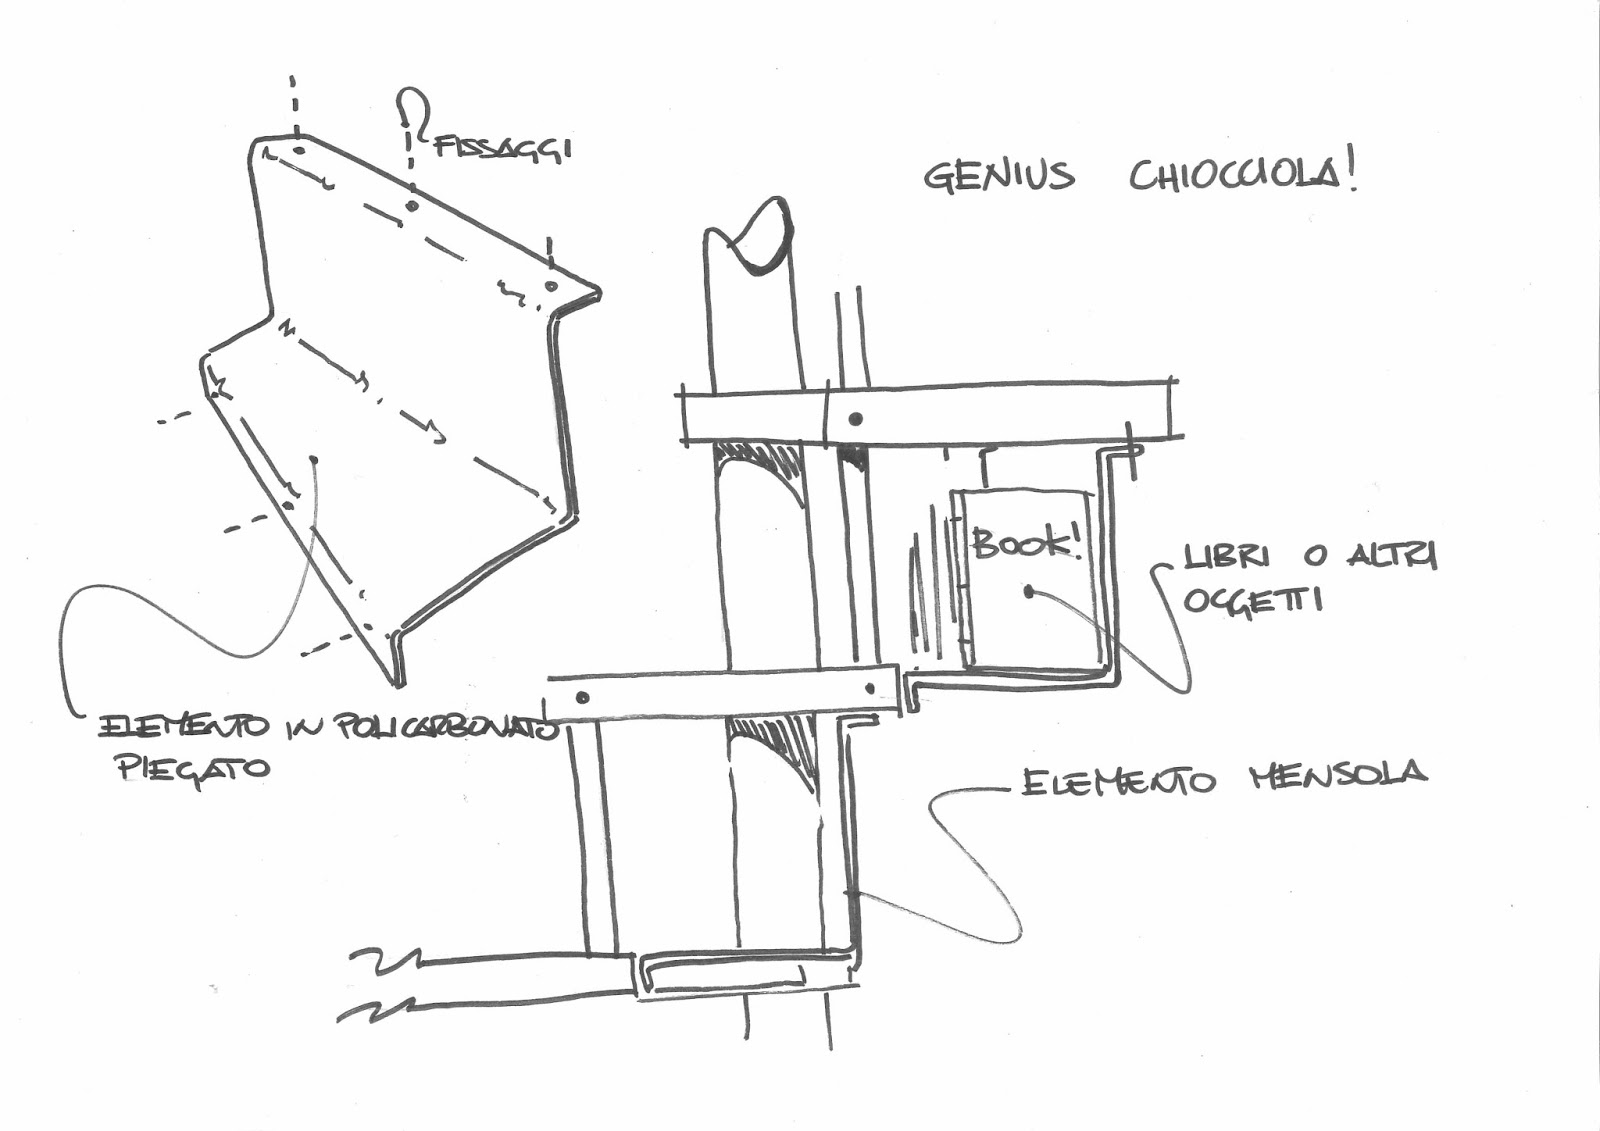 Design shelf y nei gradini fontanot design with love for Scala a chiocciola da 4 piedi